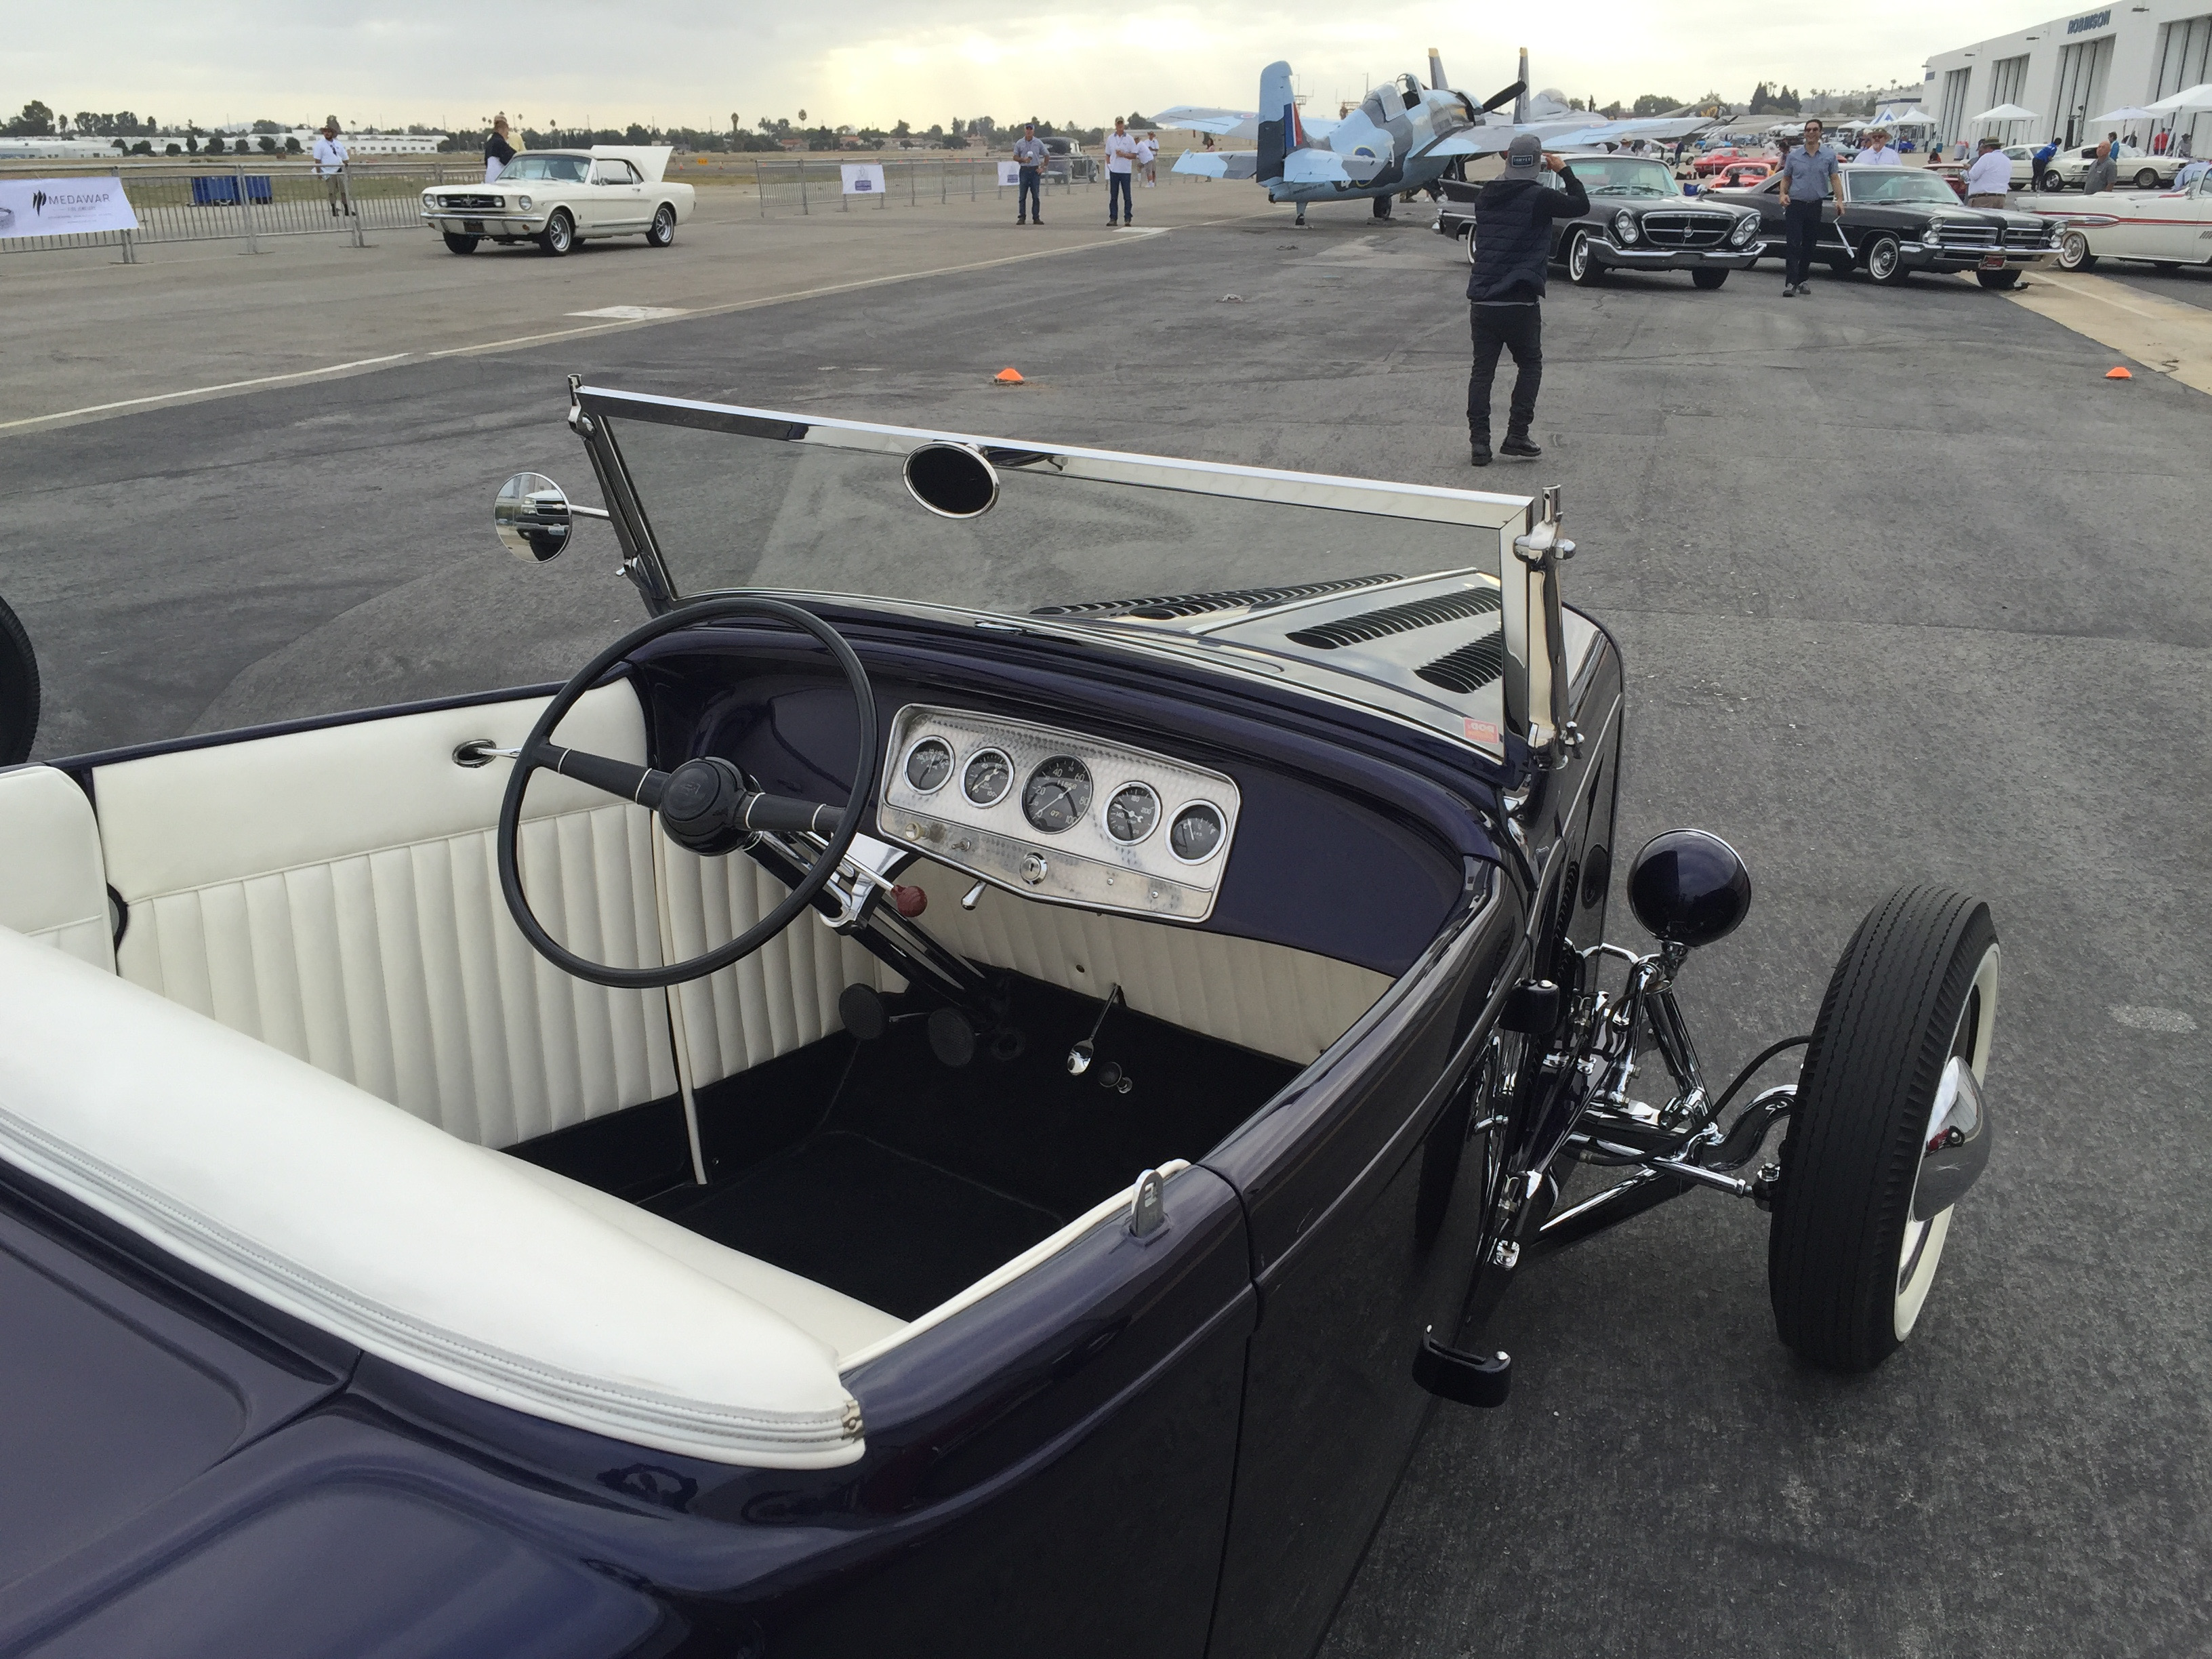 21PV17 \'32 Ford traditional hot rod - ClassicCars.com Journal